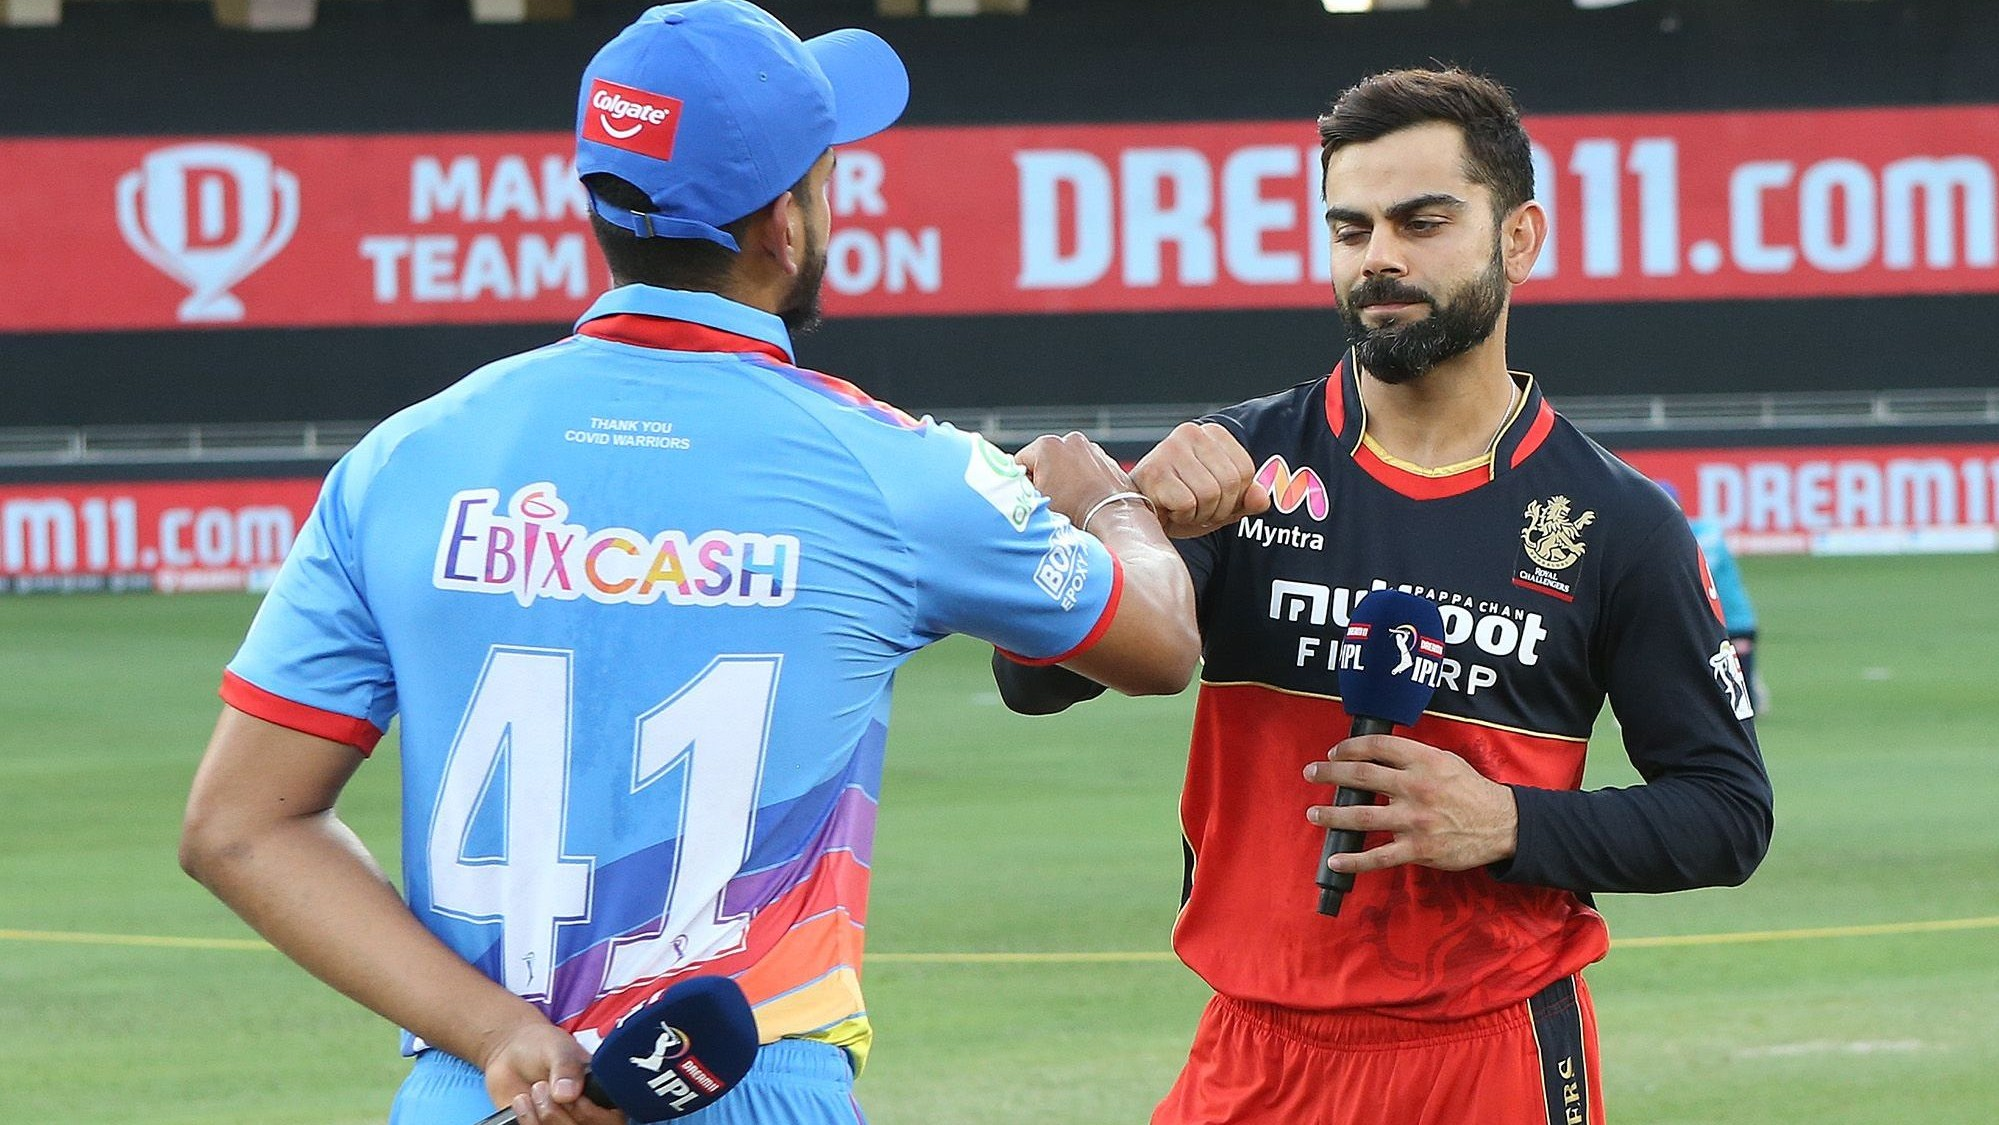 IPL 2020: Match 55, DC v RCB - Statistical Preview of the Match